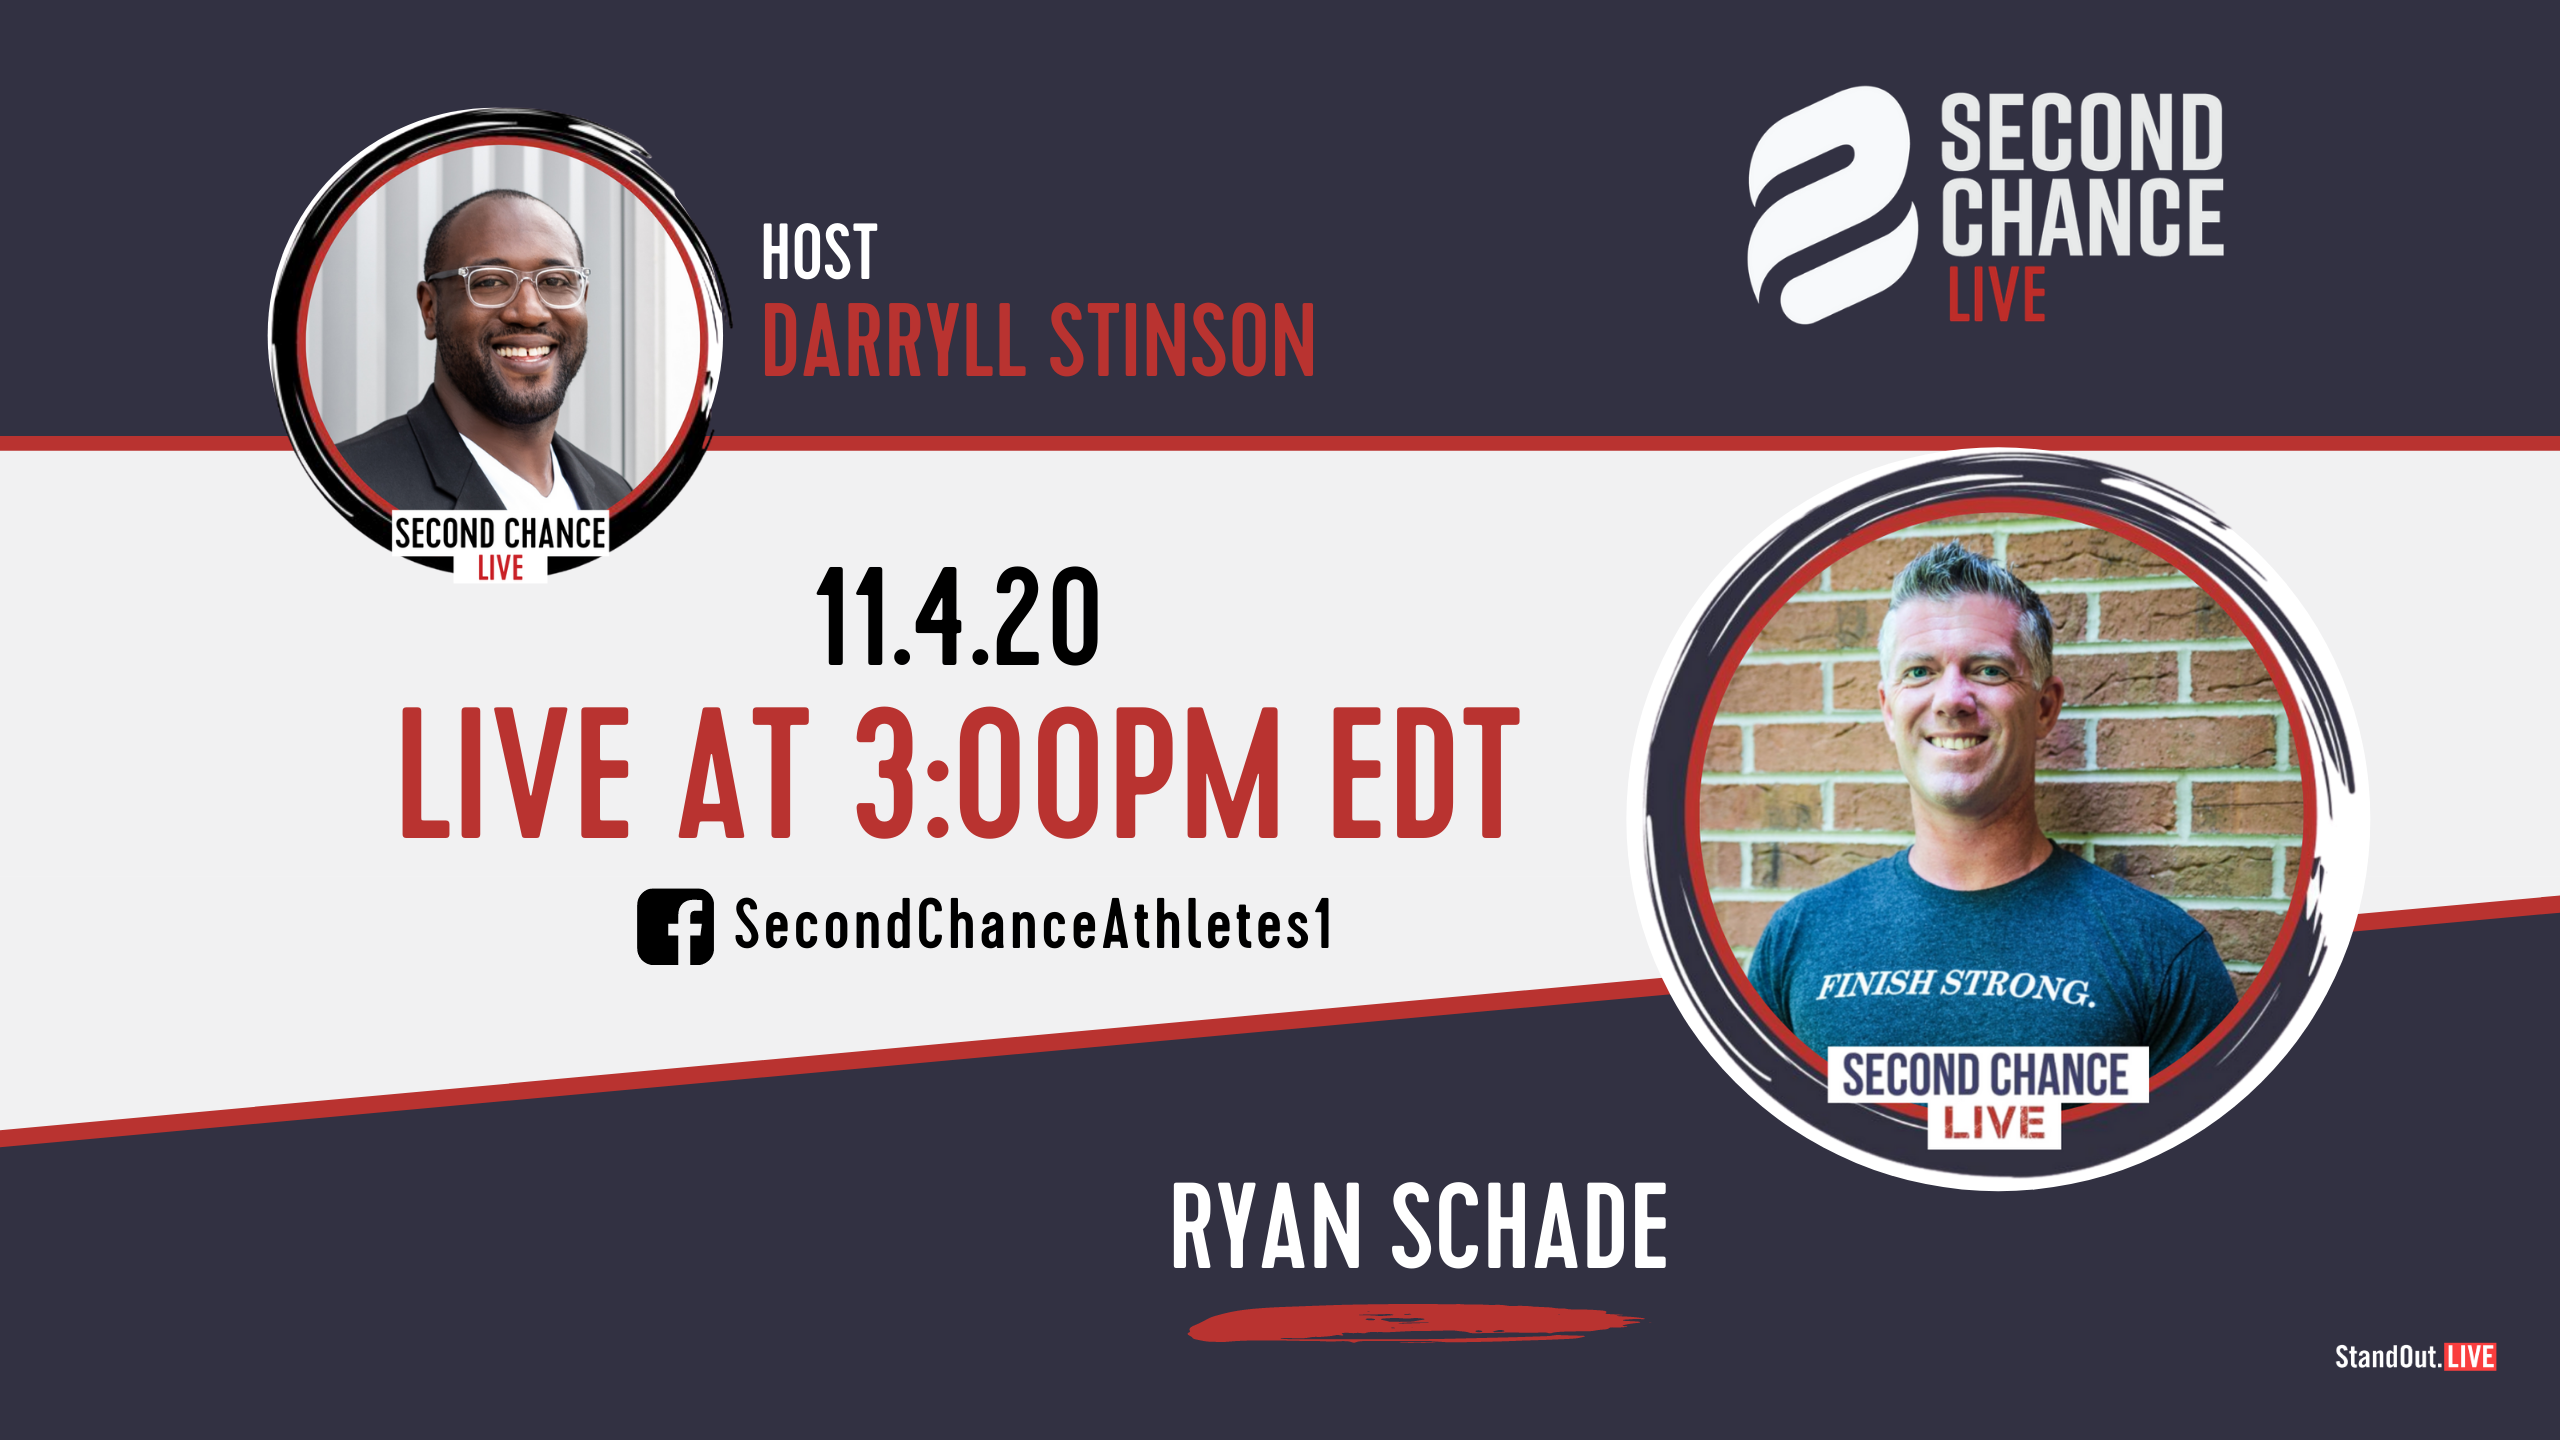 Second Chance LIVE -with Ryan Schade